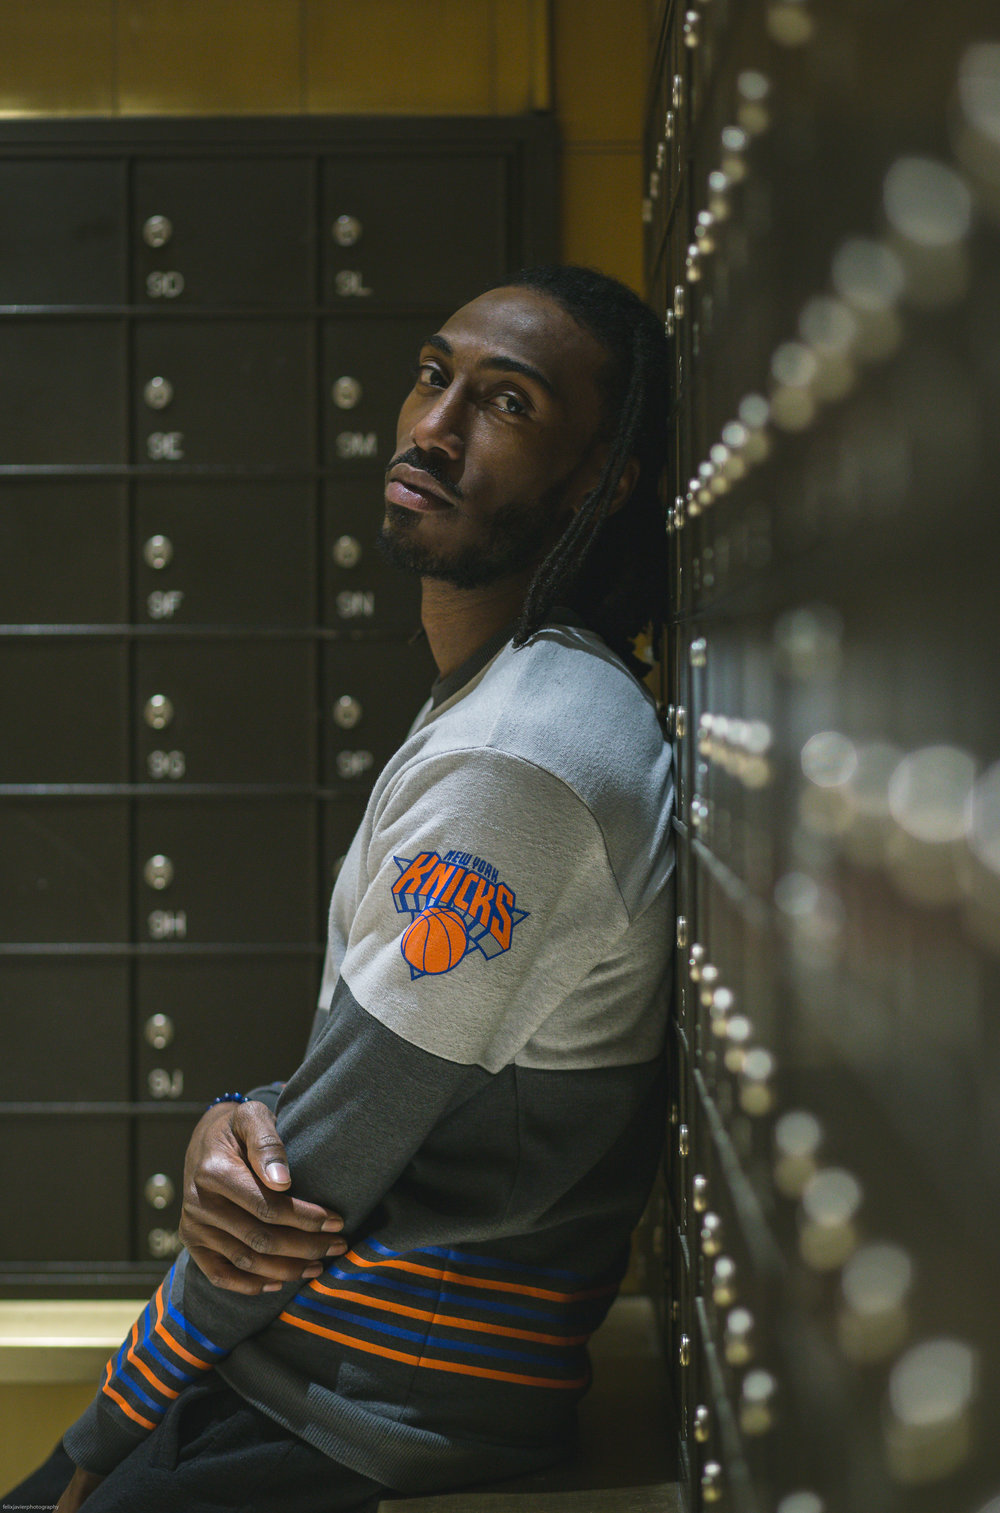 Grungy Gentleman x New York Knicks 12.jpg